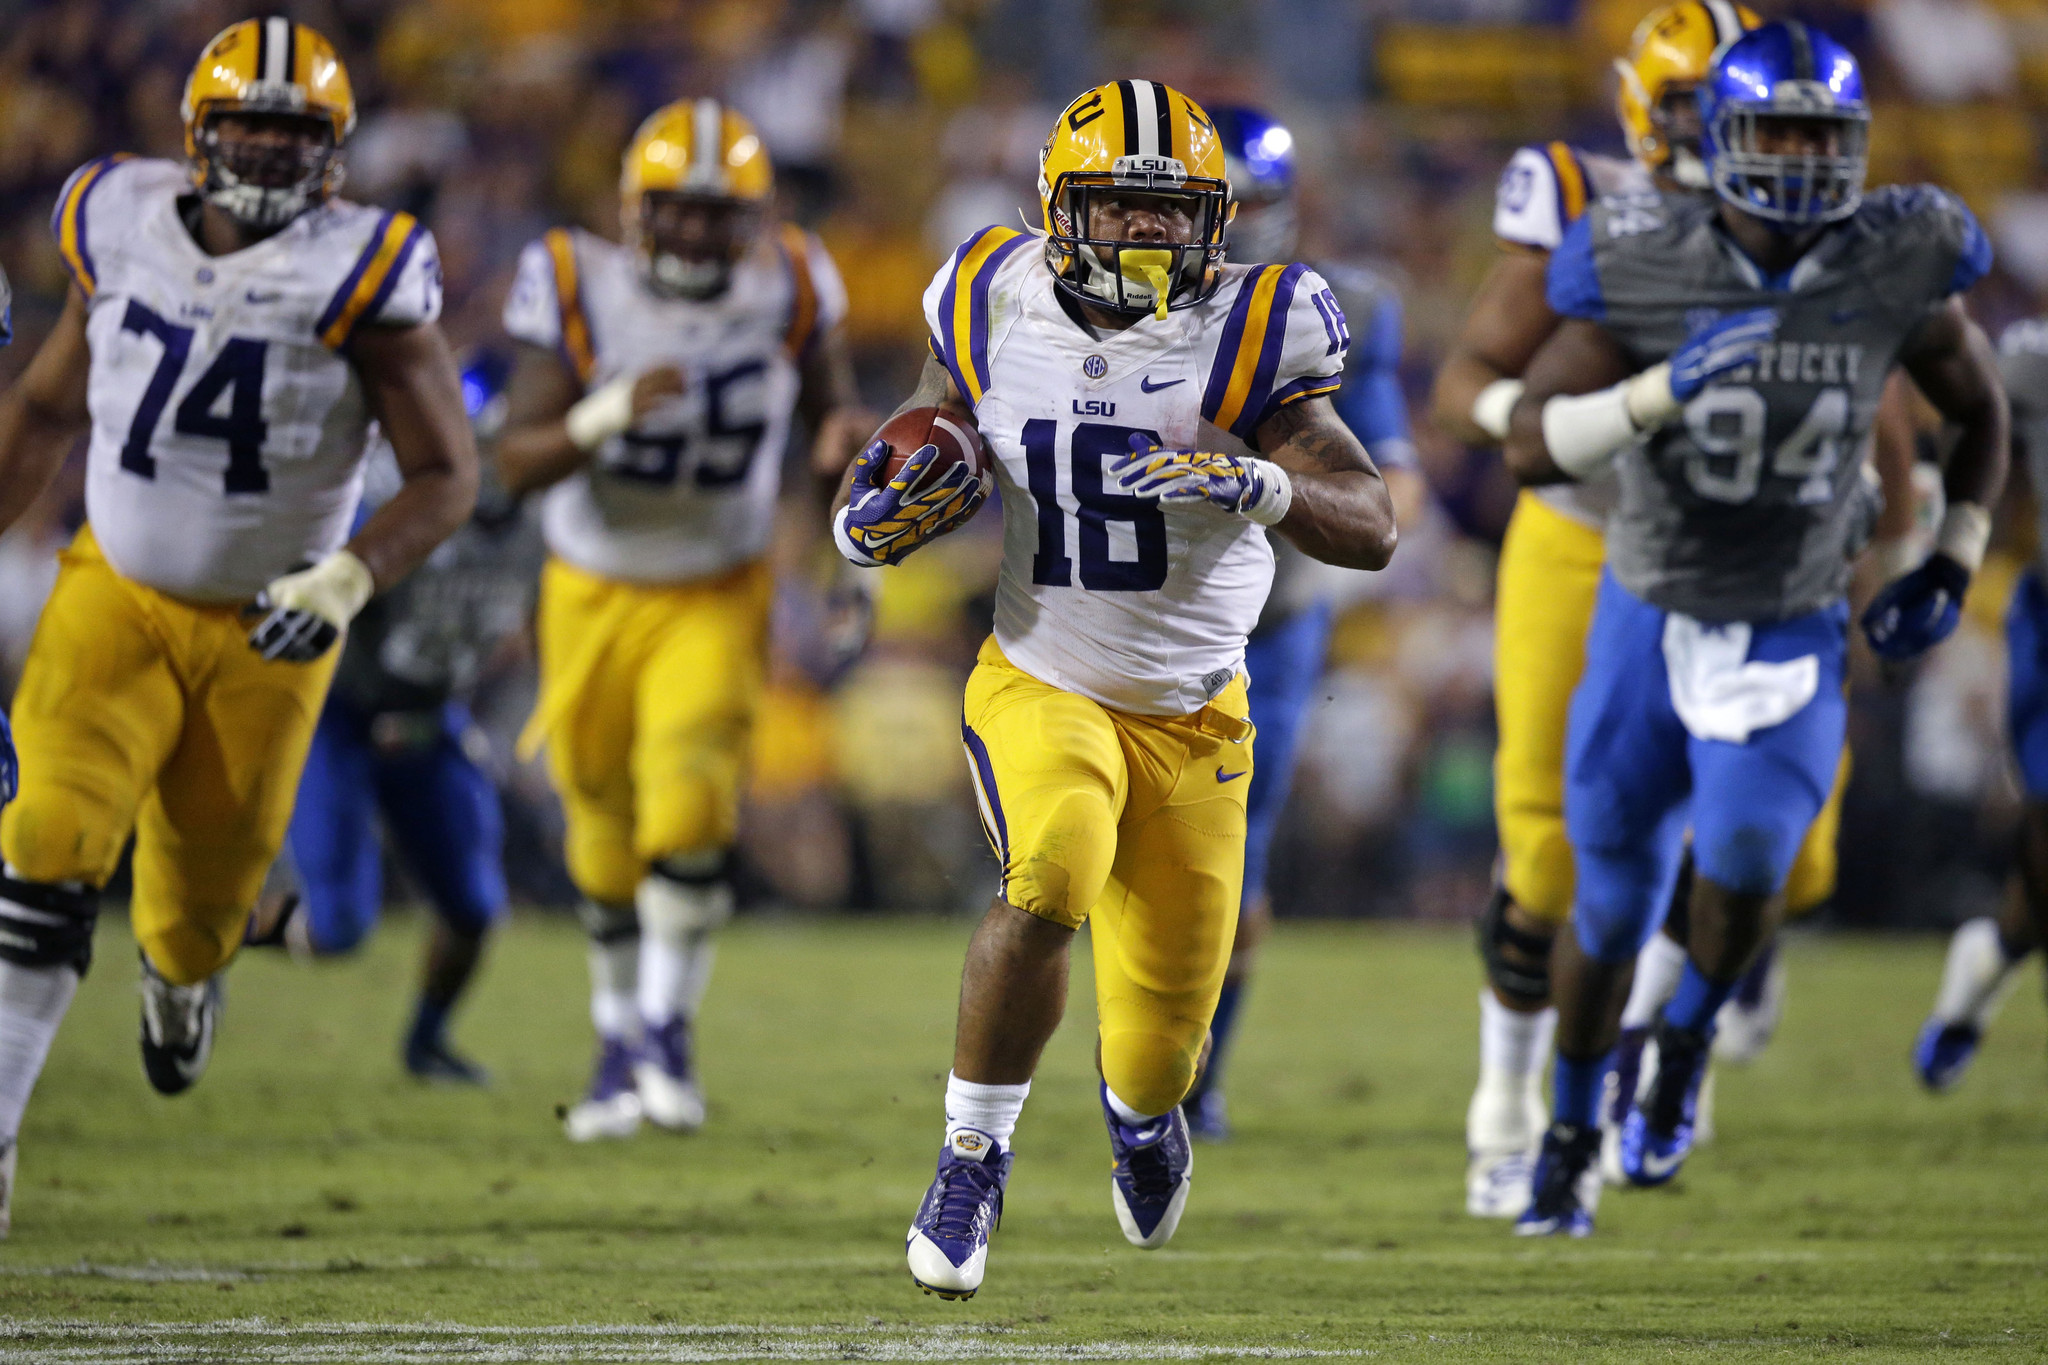 Lsu Running Back